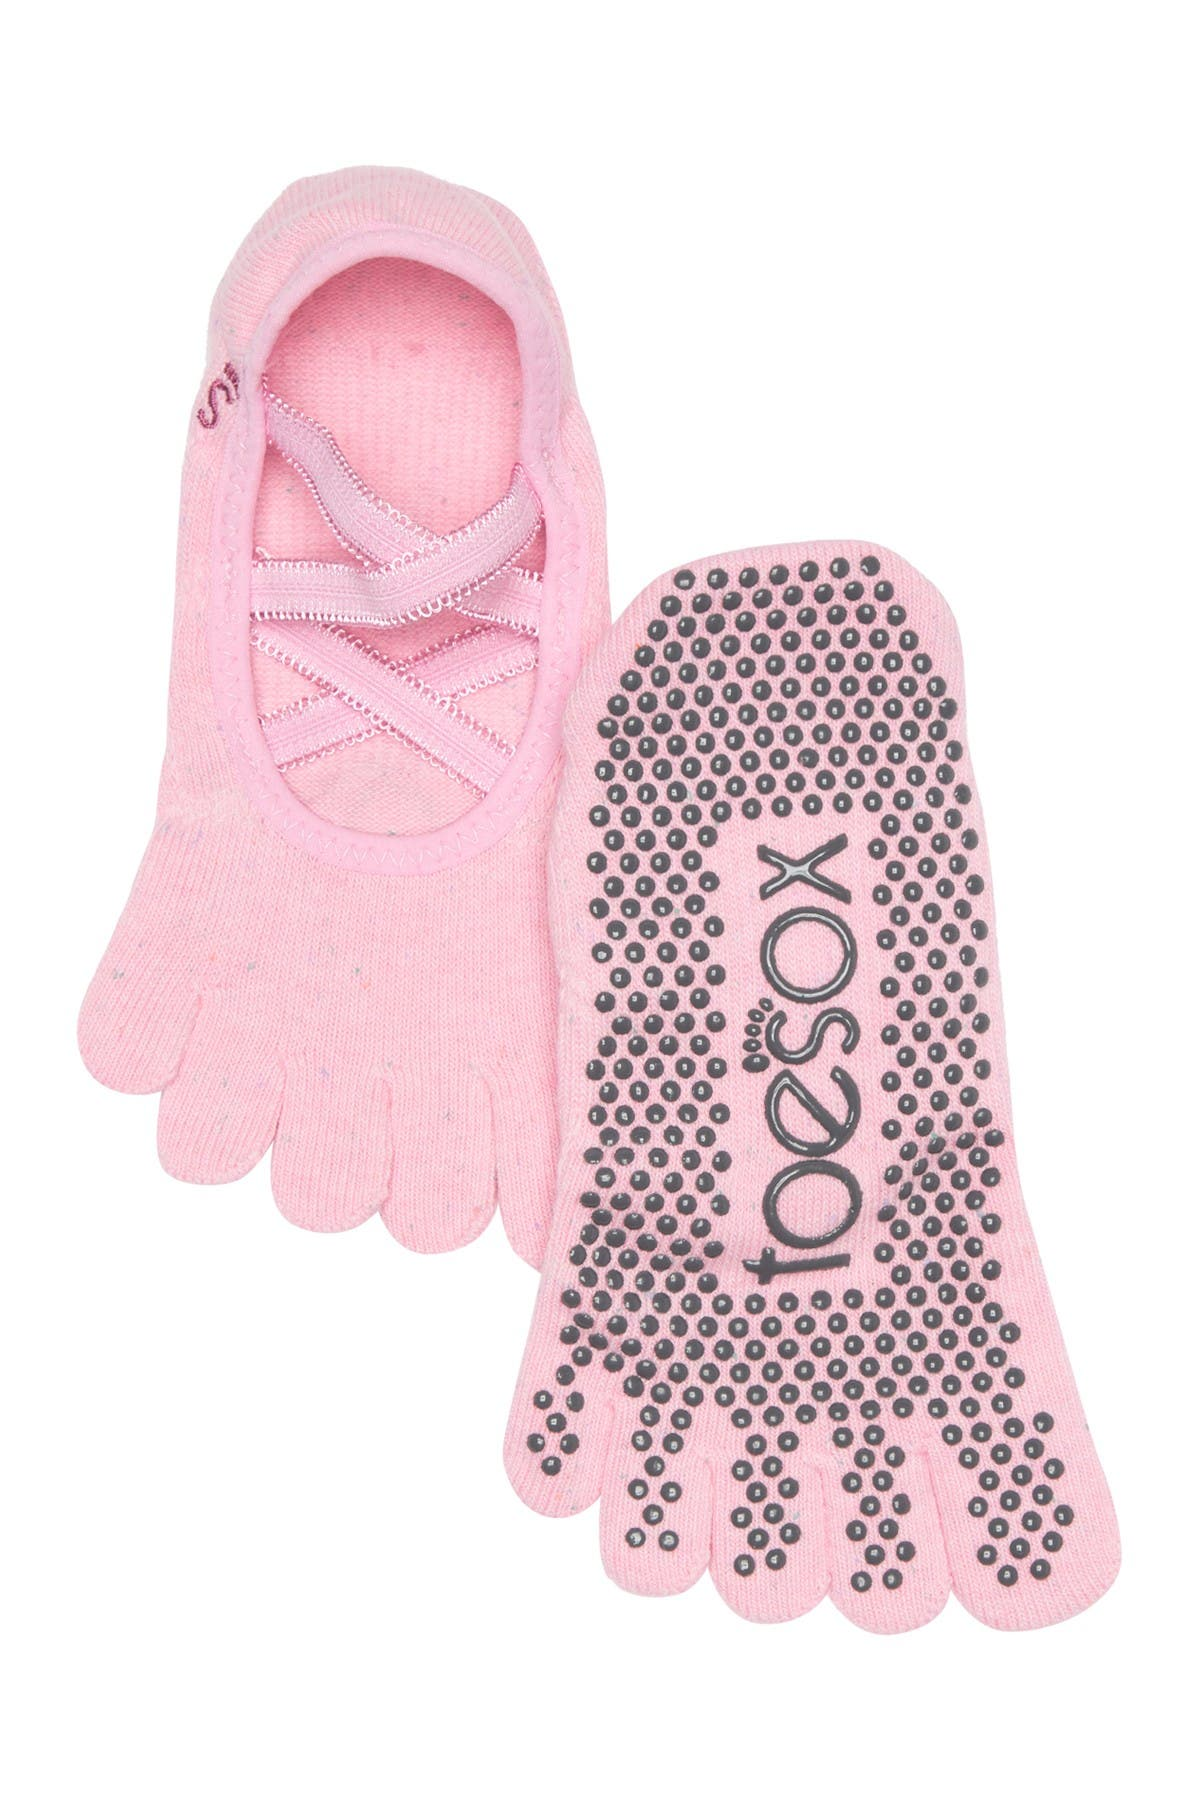 Image of ToeSox Full Toe Elle Grip Socks